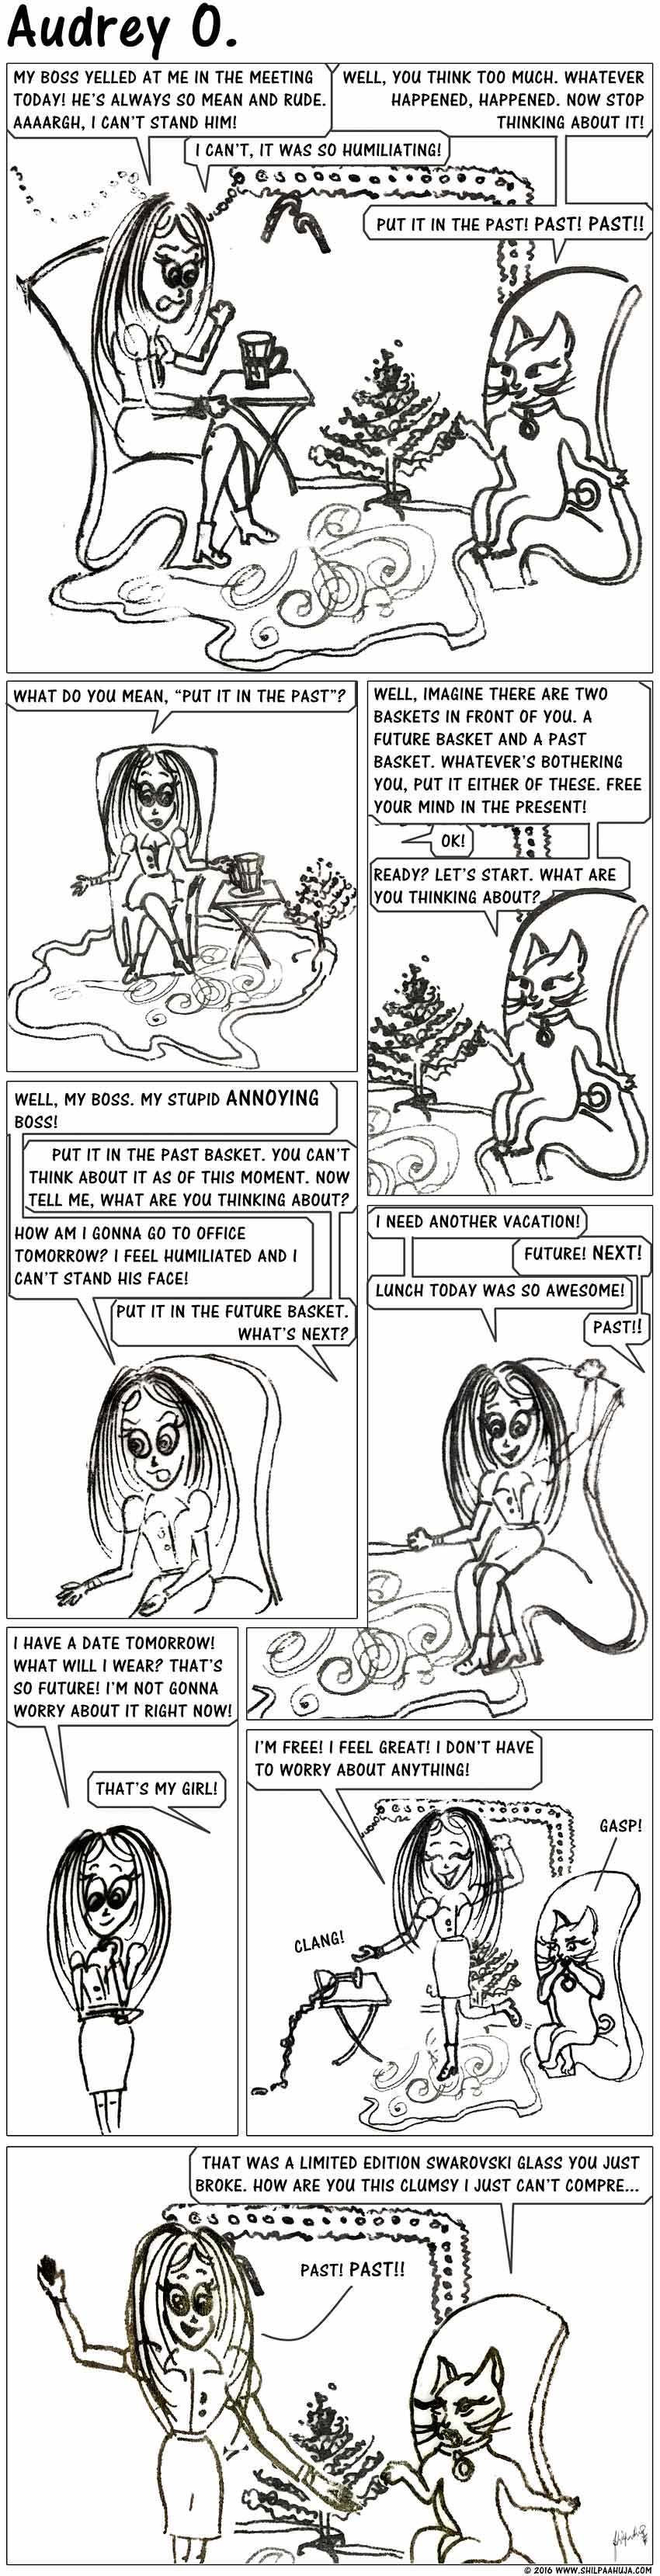 audrey-o-comic-v1e120-cartoon-how-to-not-think-too-much-calm-past-future-coco